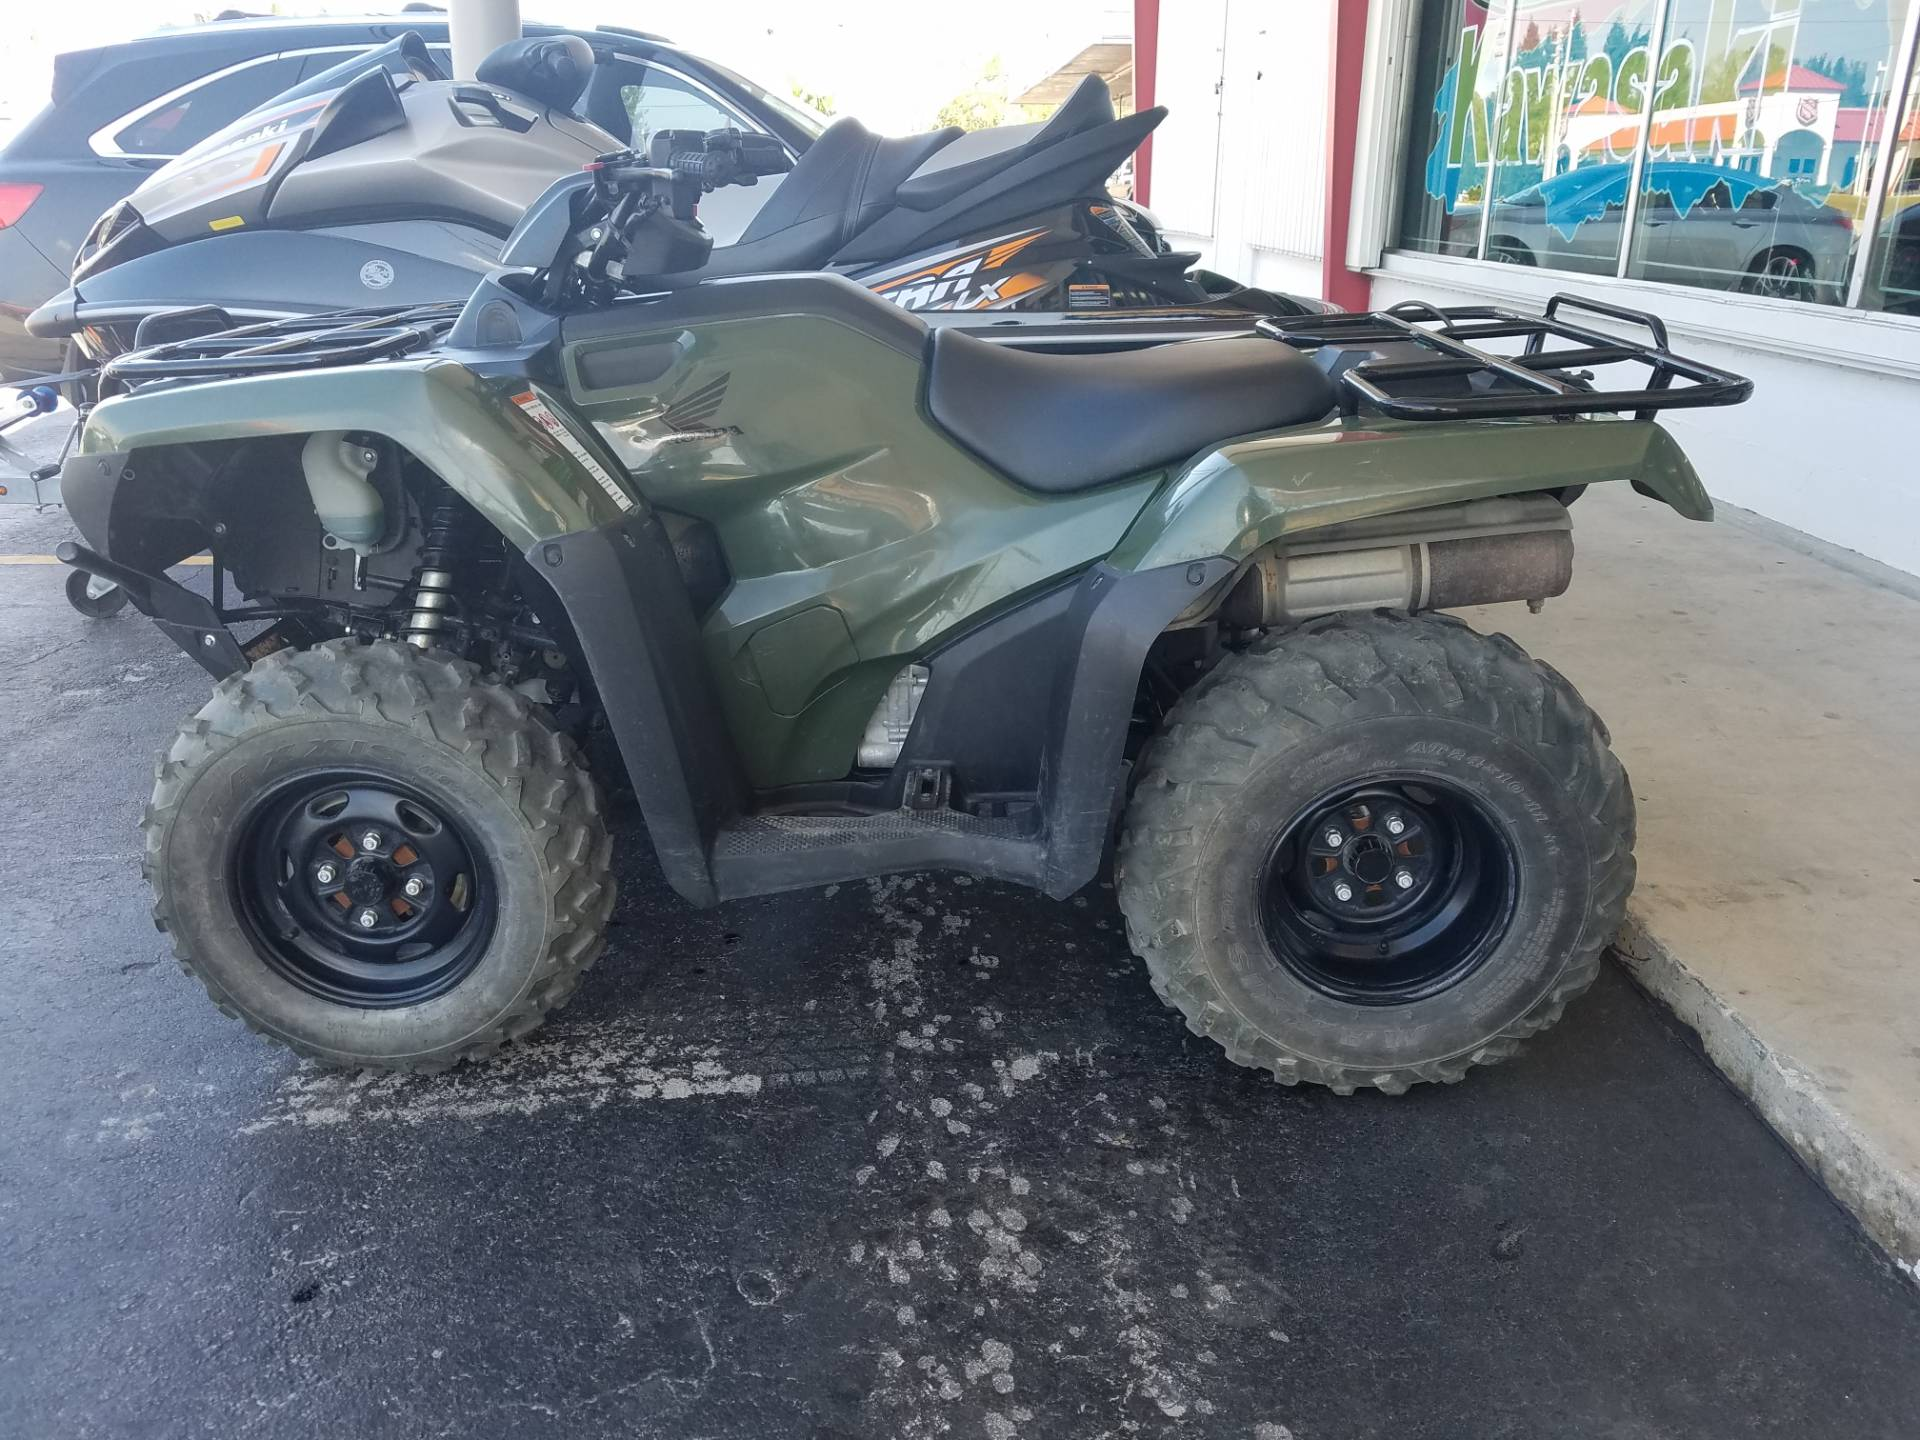 2016 Honda FourTrax Rancher ES in Fort Pierce, Florida - Photo 3